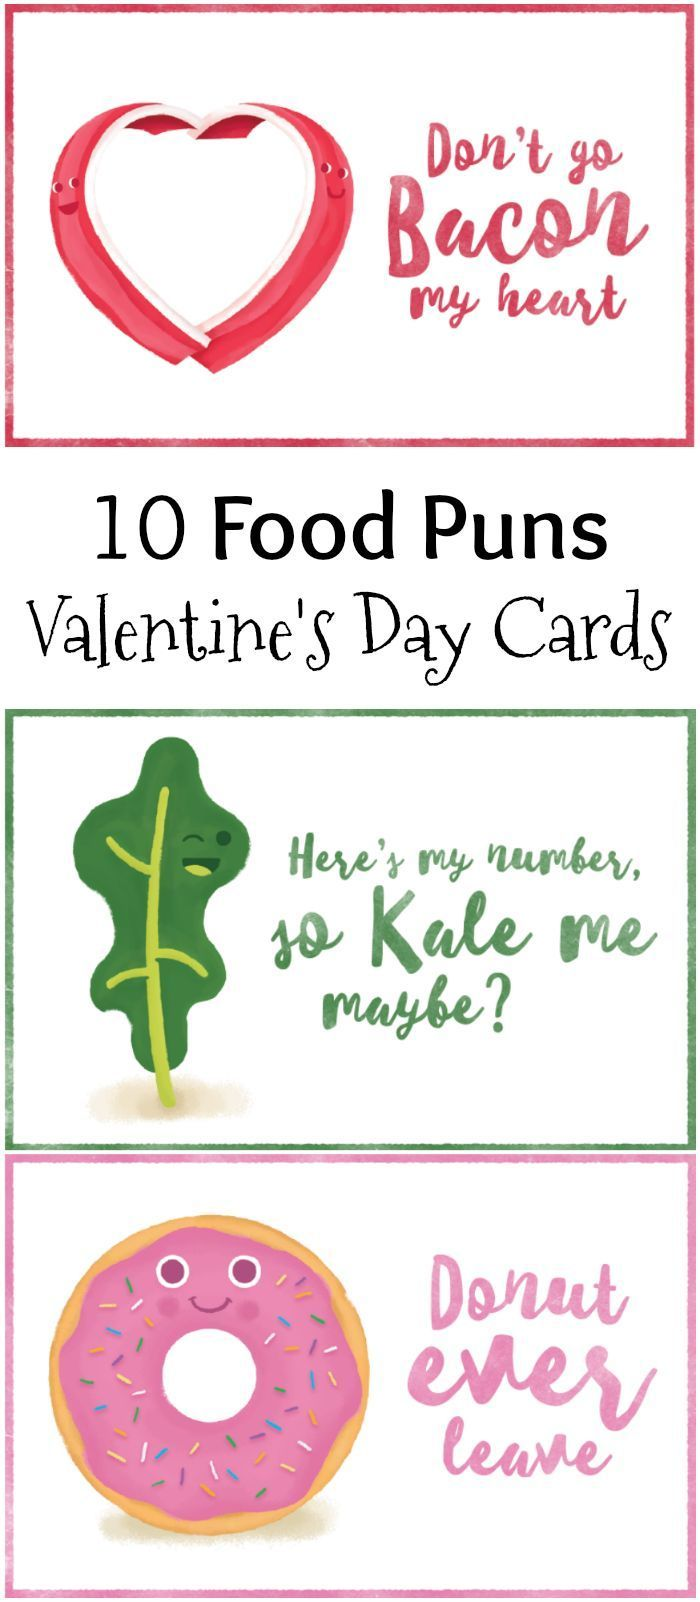 These  Food Pun Valentines Day Cards Are To Make Your Valentine Smile Slip One Of The Food Pun Valentines In Their Lunch For A Surprise Free Printables